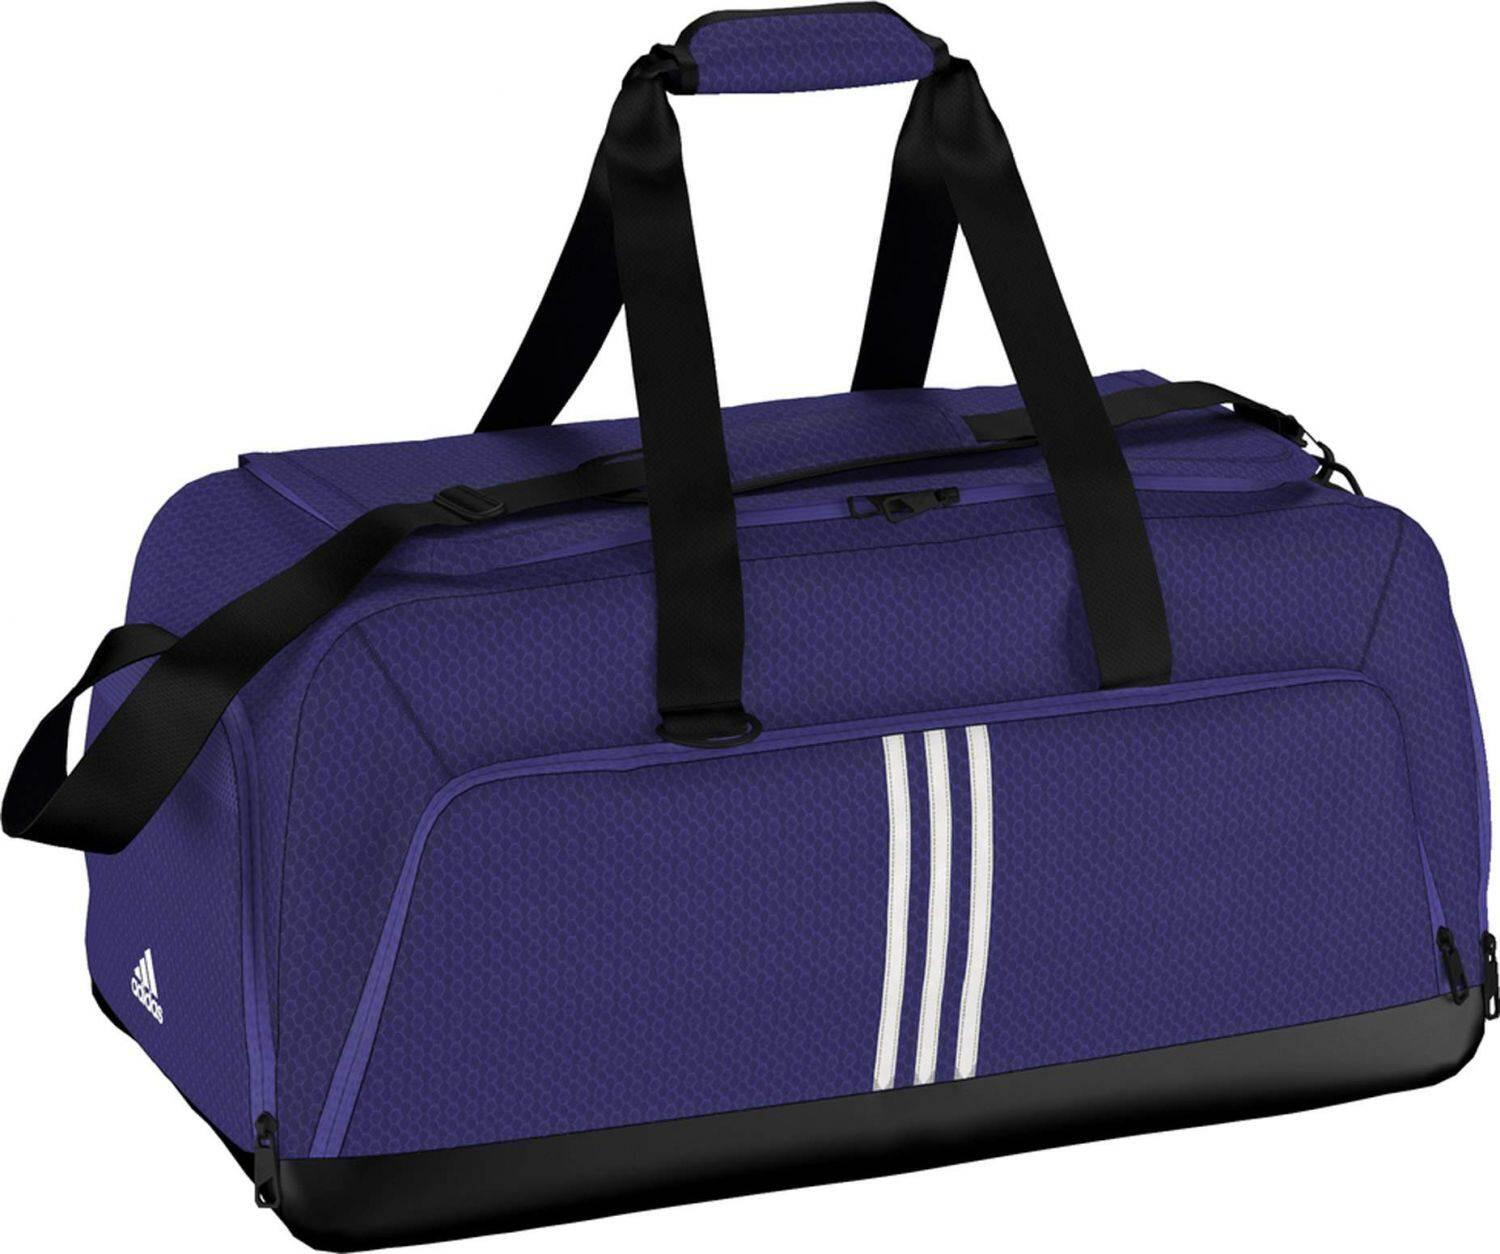 adidas-3s-performance-teambag-s-sporttasche-farbe-night-flash-s15-white-white-